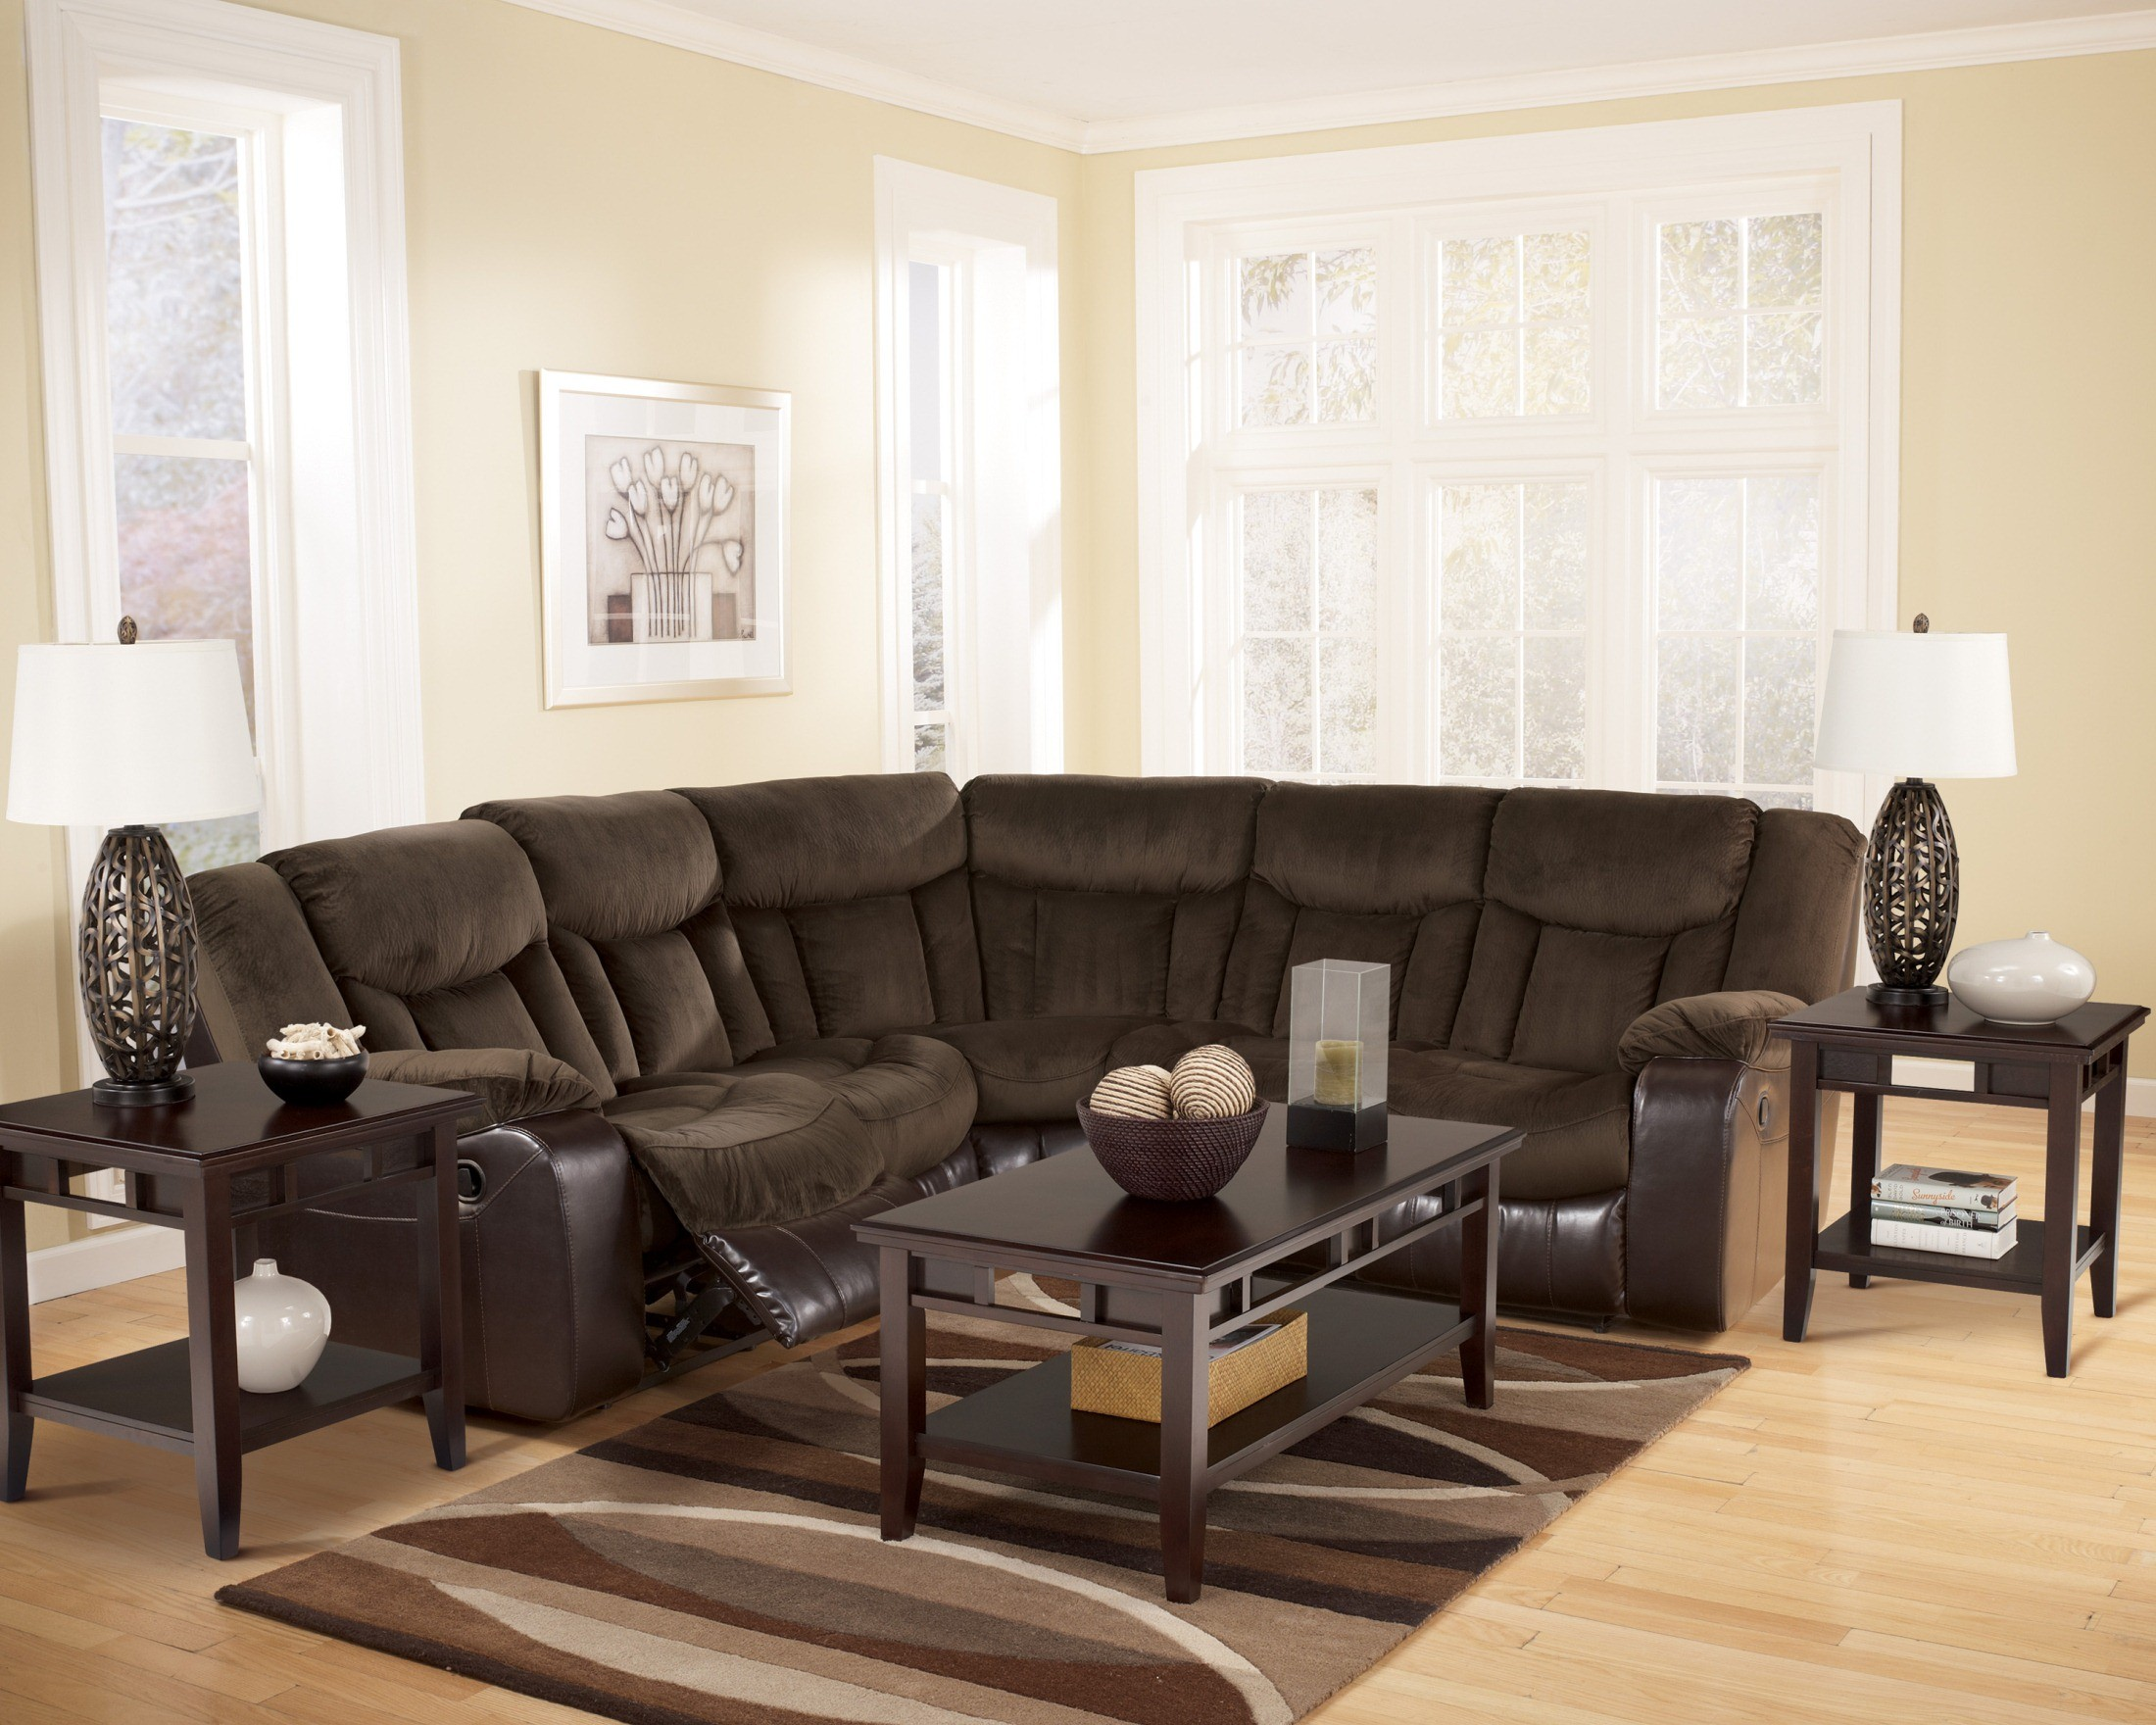 Tafton Java Sectional From Ashley 79202 48 49 Coleman Furniture